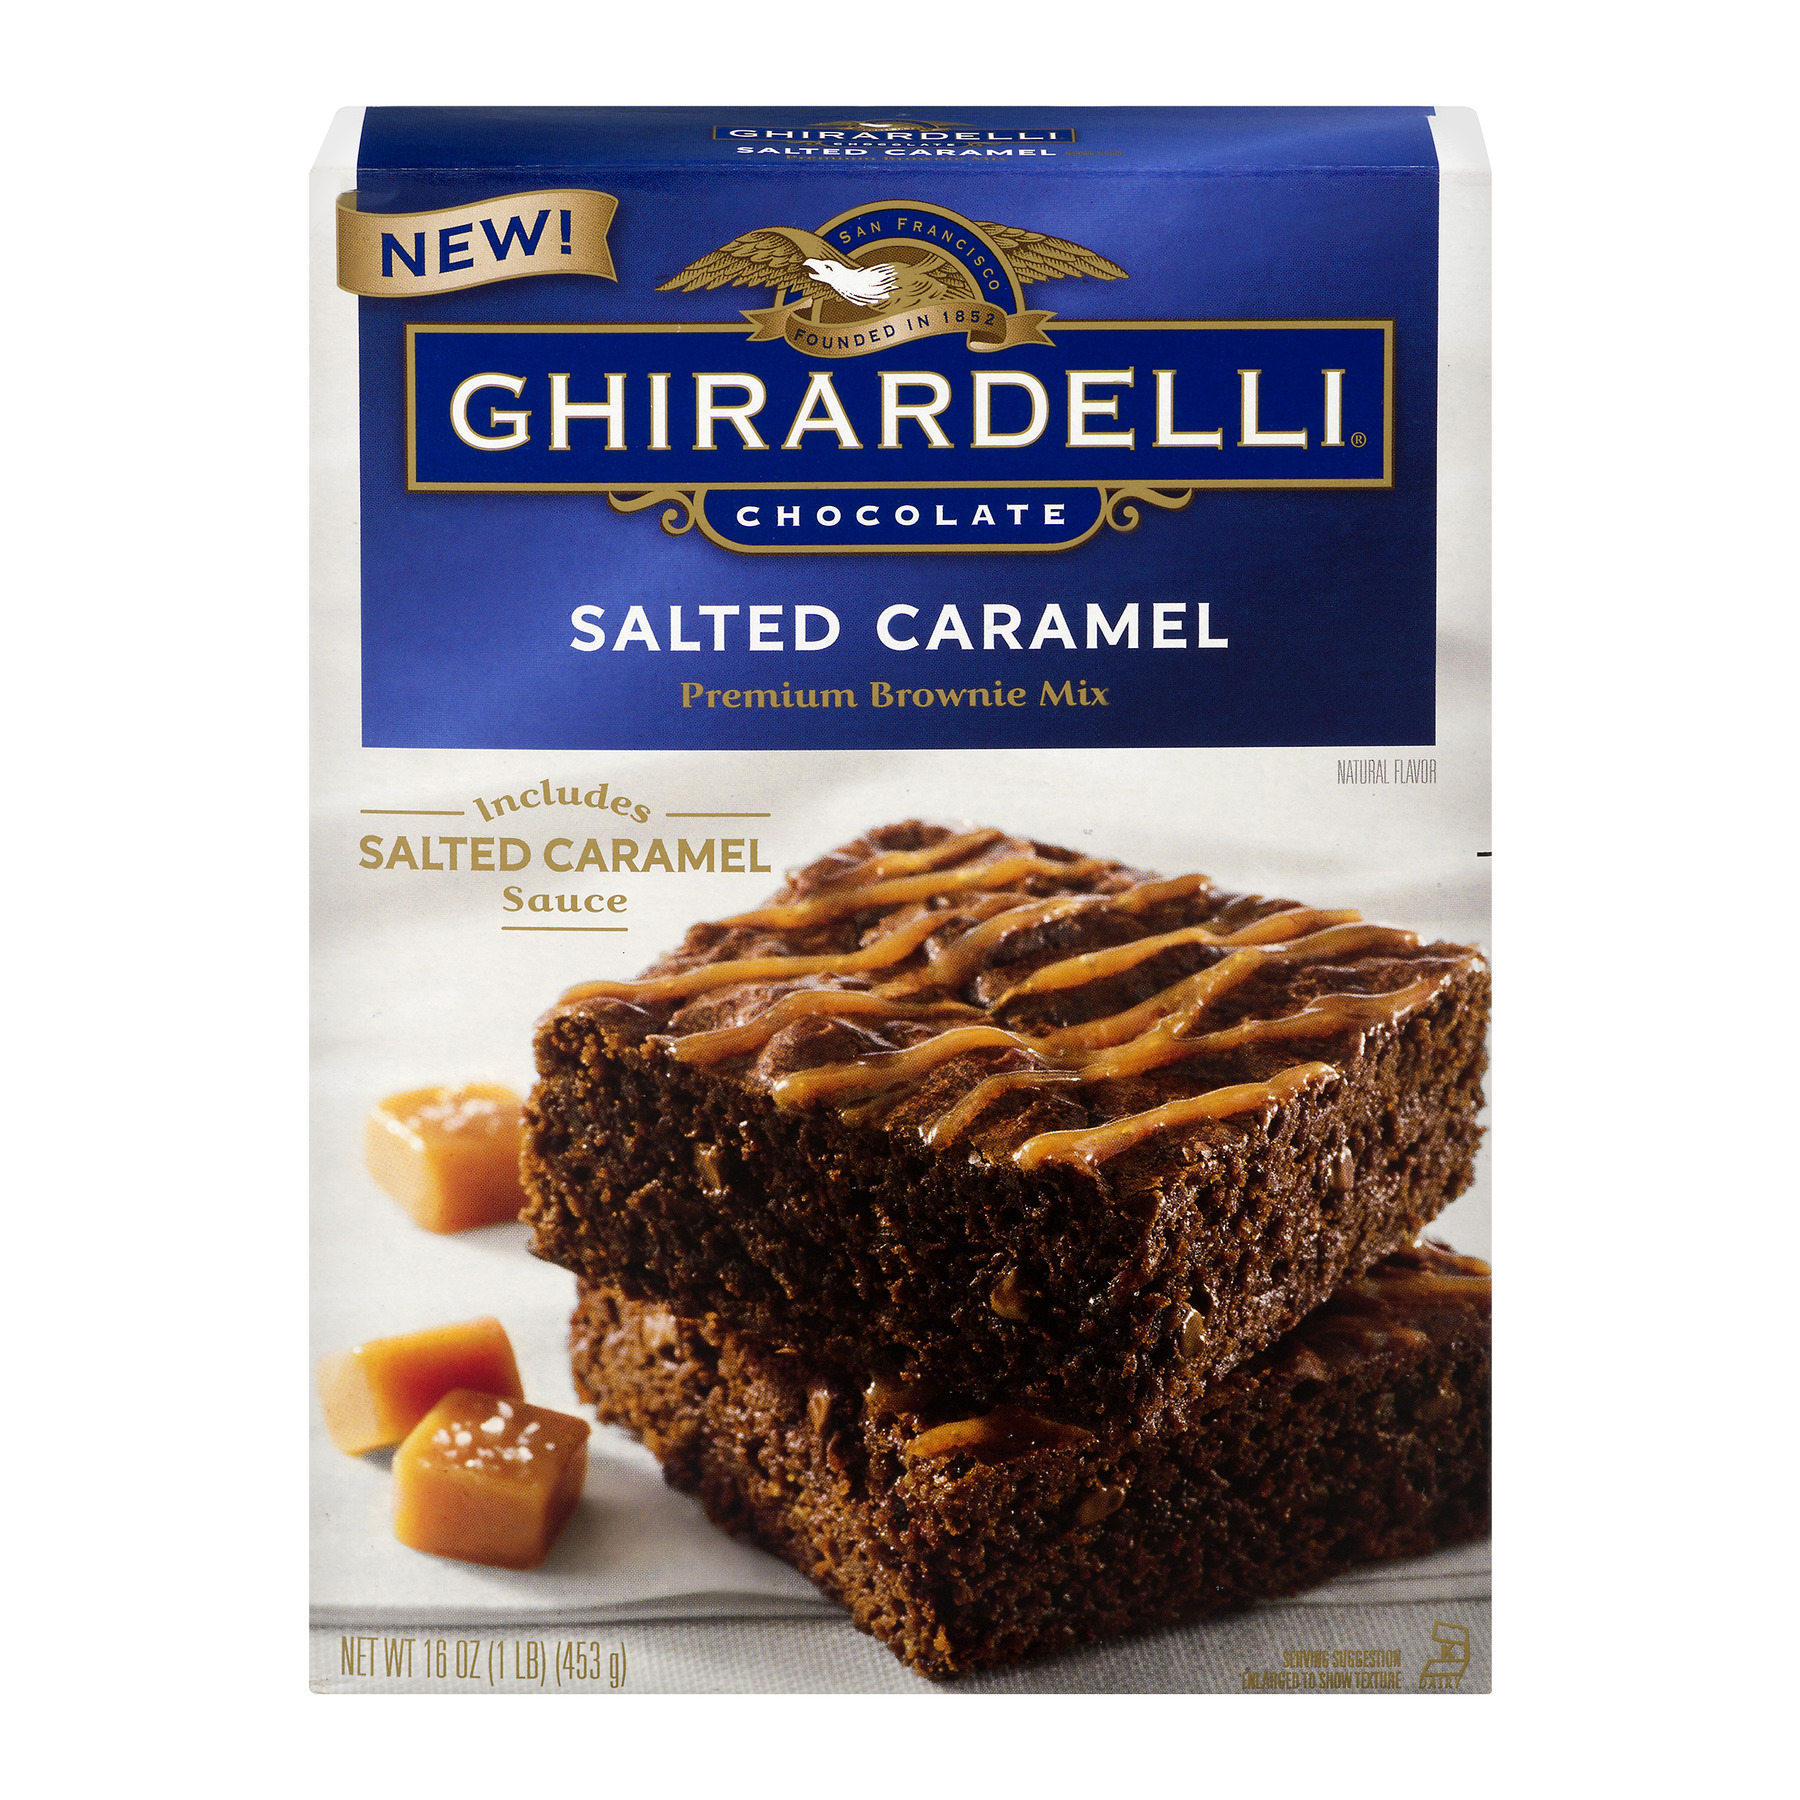 Ghirardelli Chocolate Premium Brownie Mix Salted Caramel, 16.0 OZ